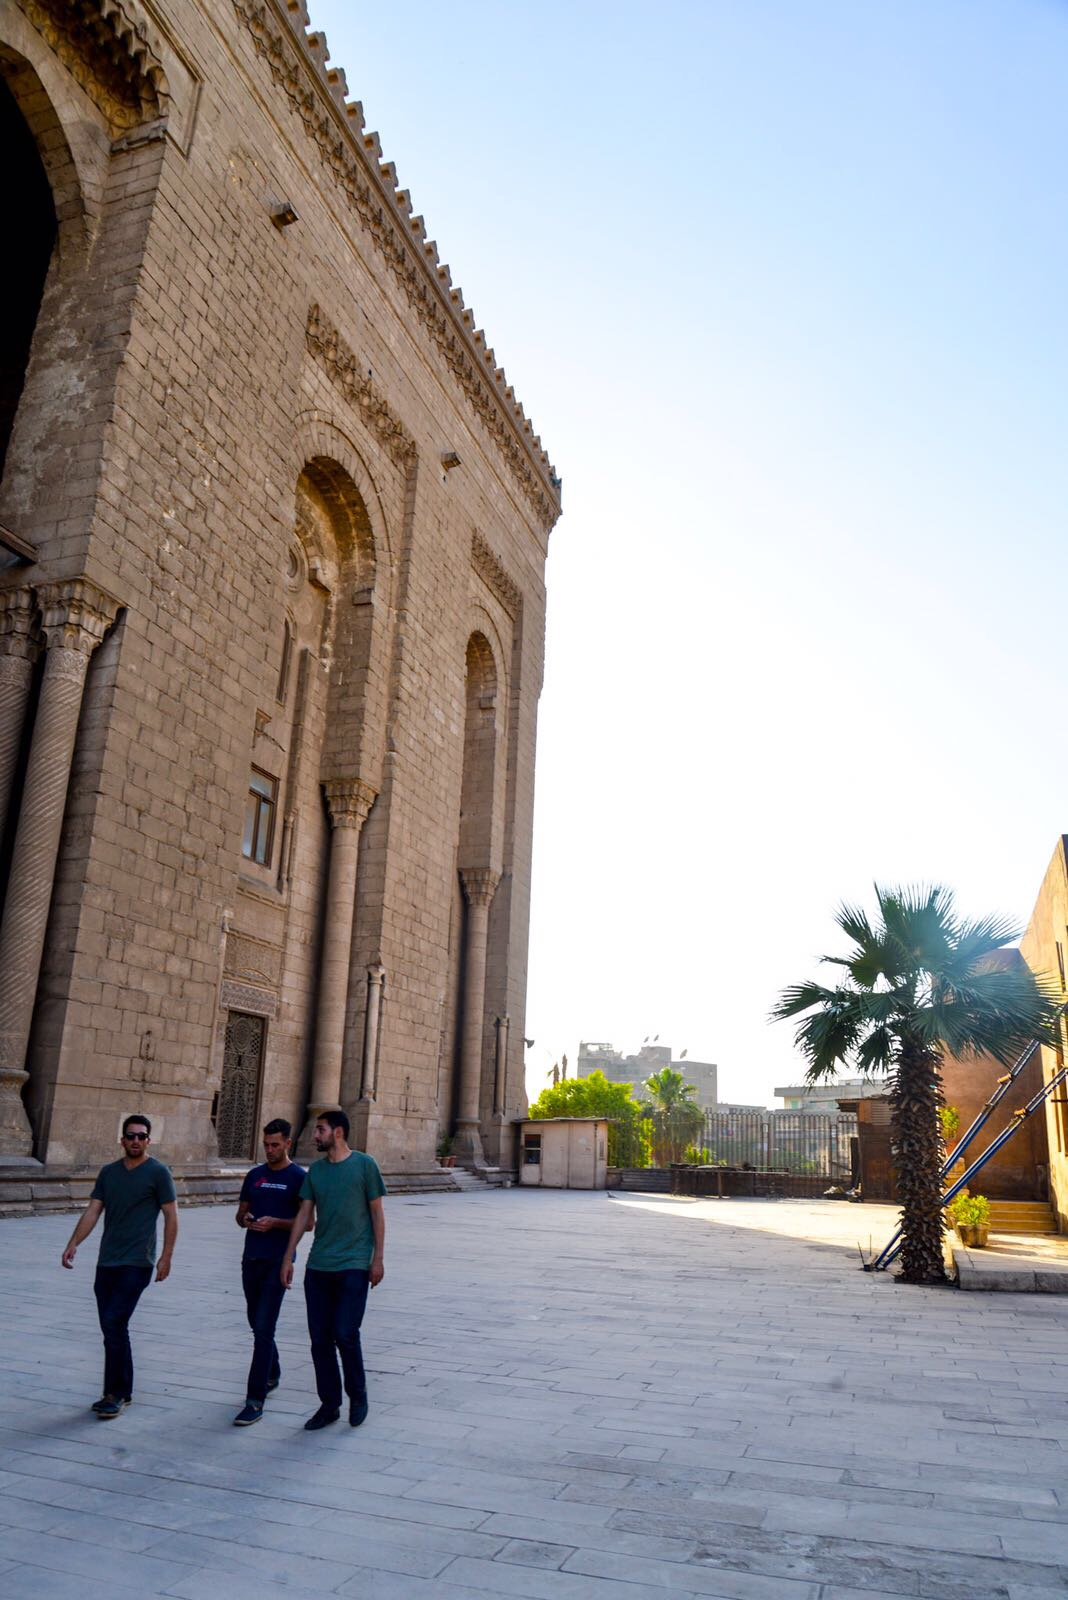 Walking by the Al-Rifa'i Mosque, where the Shah of Iran lays buried.